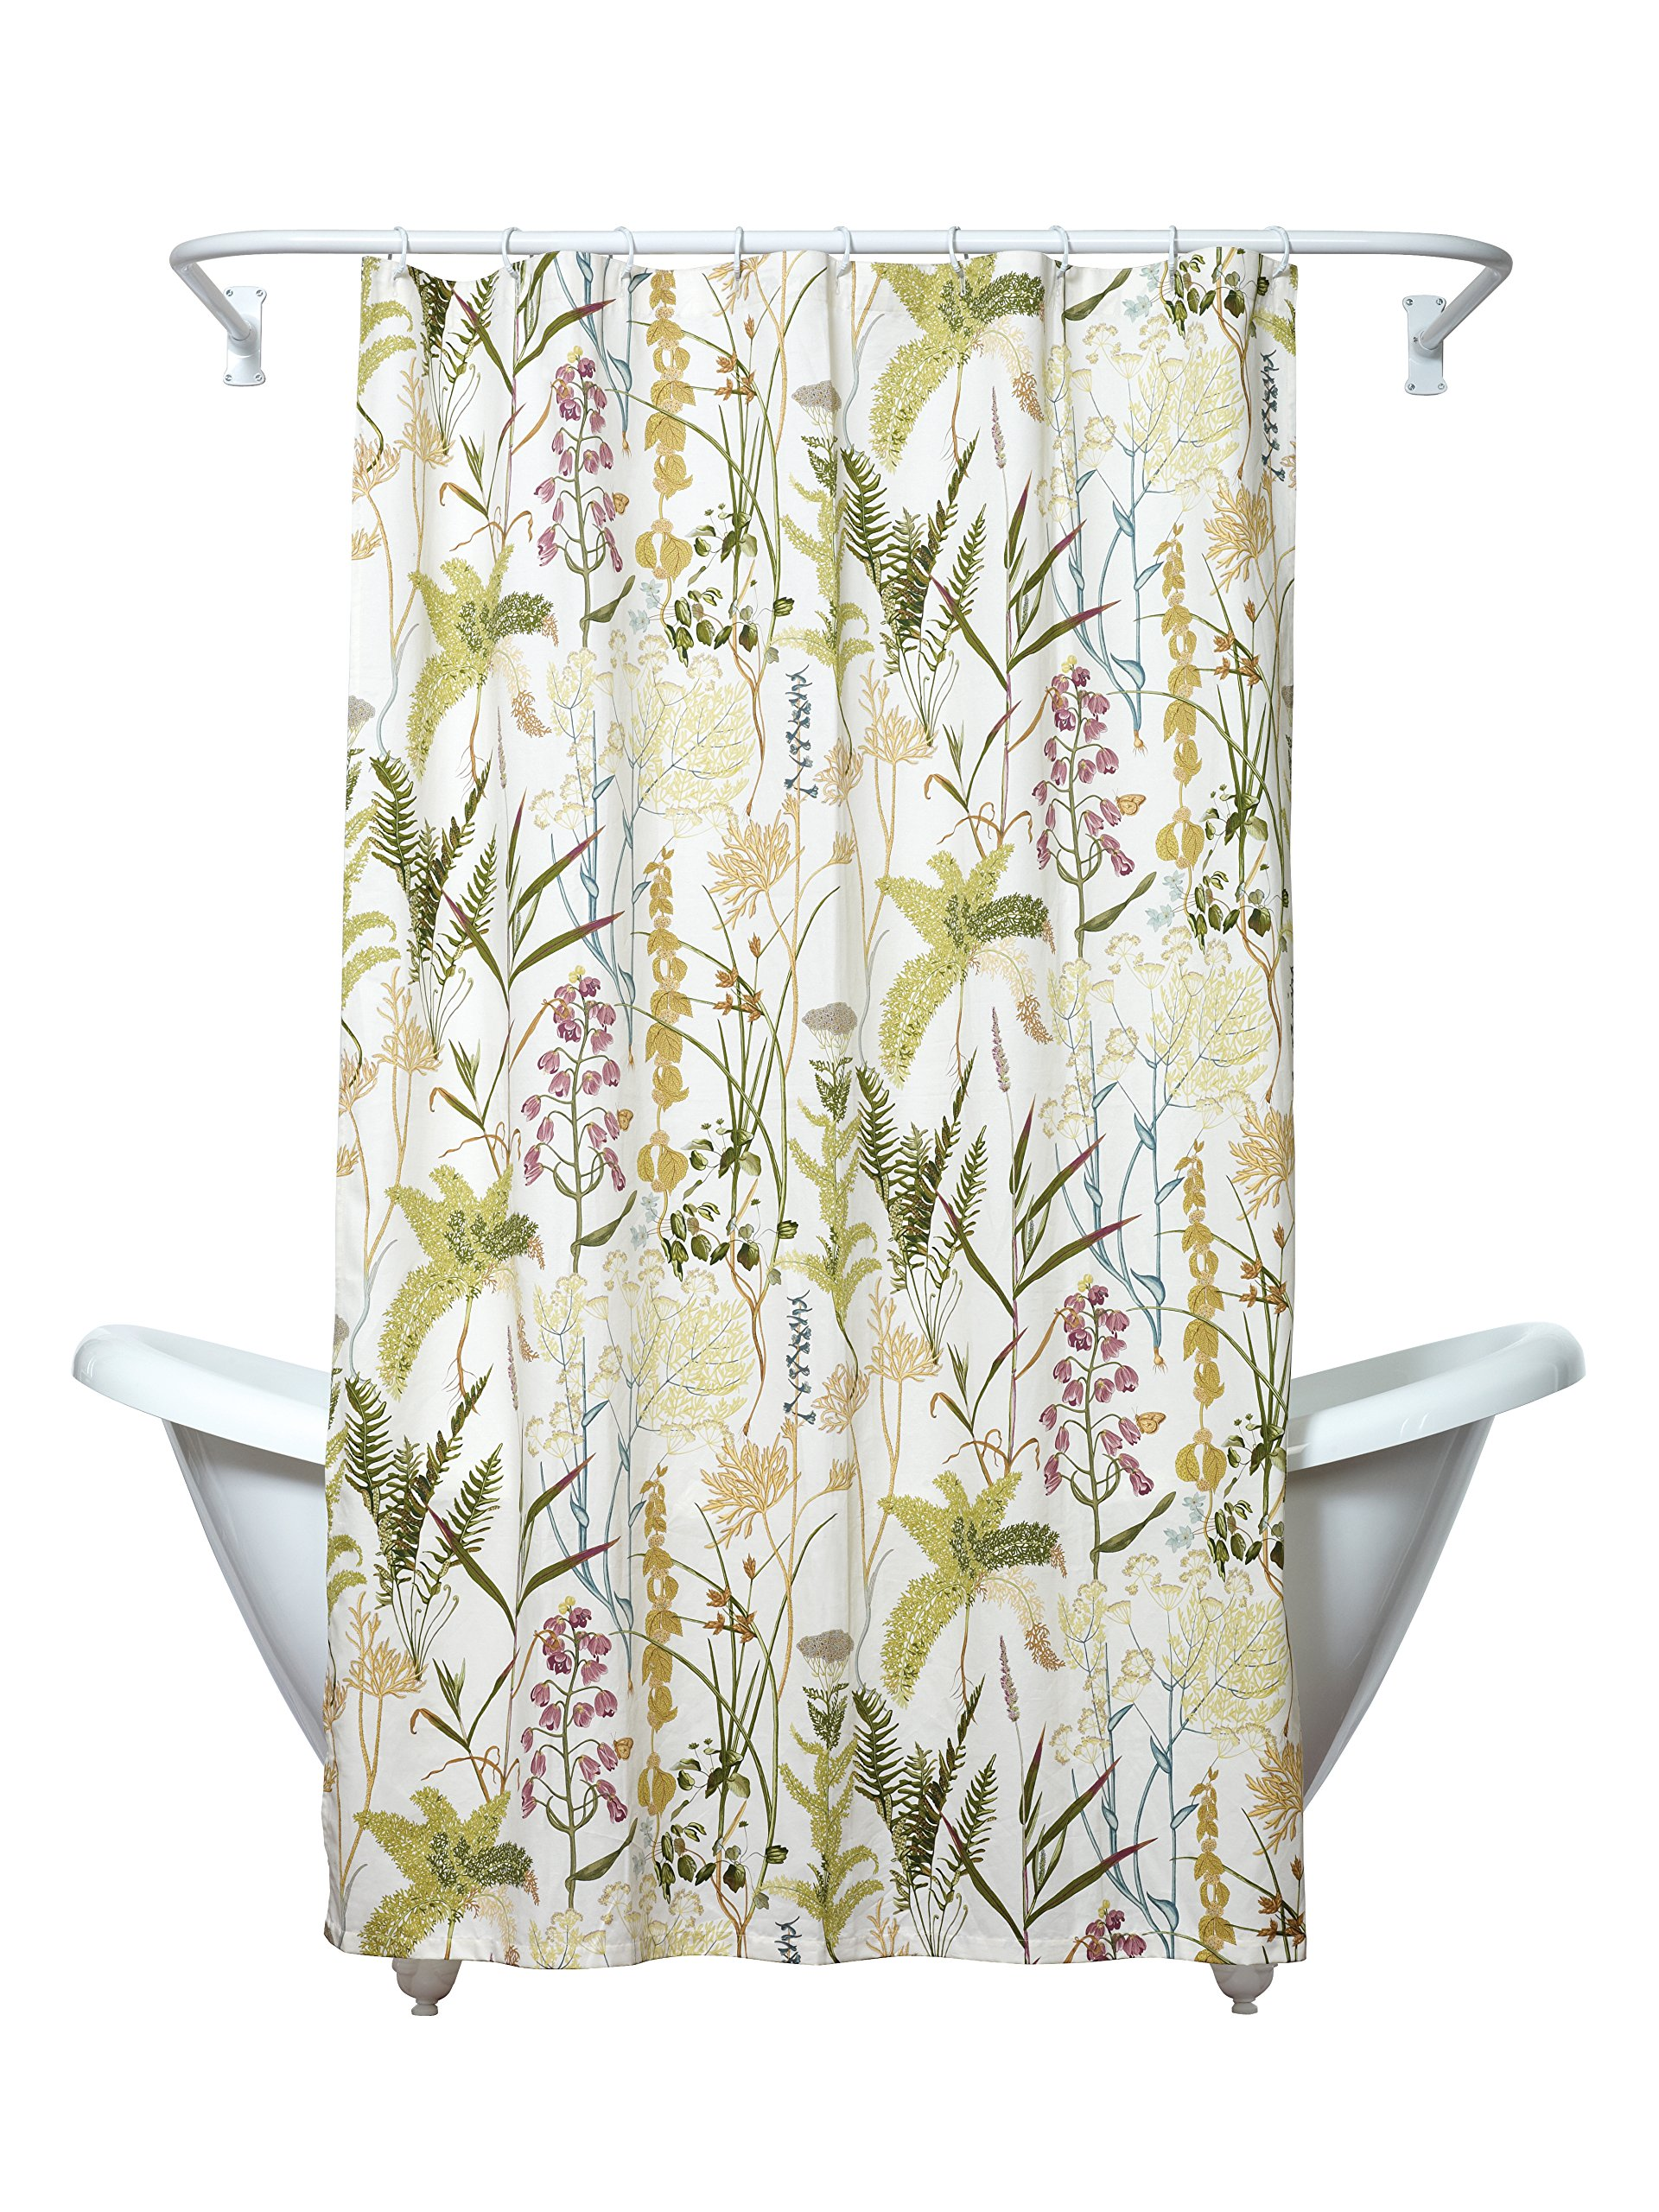 Zenna Home, India Ink Huntington Fabric Shower Curtain, Floral Ivory